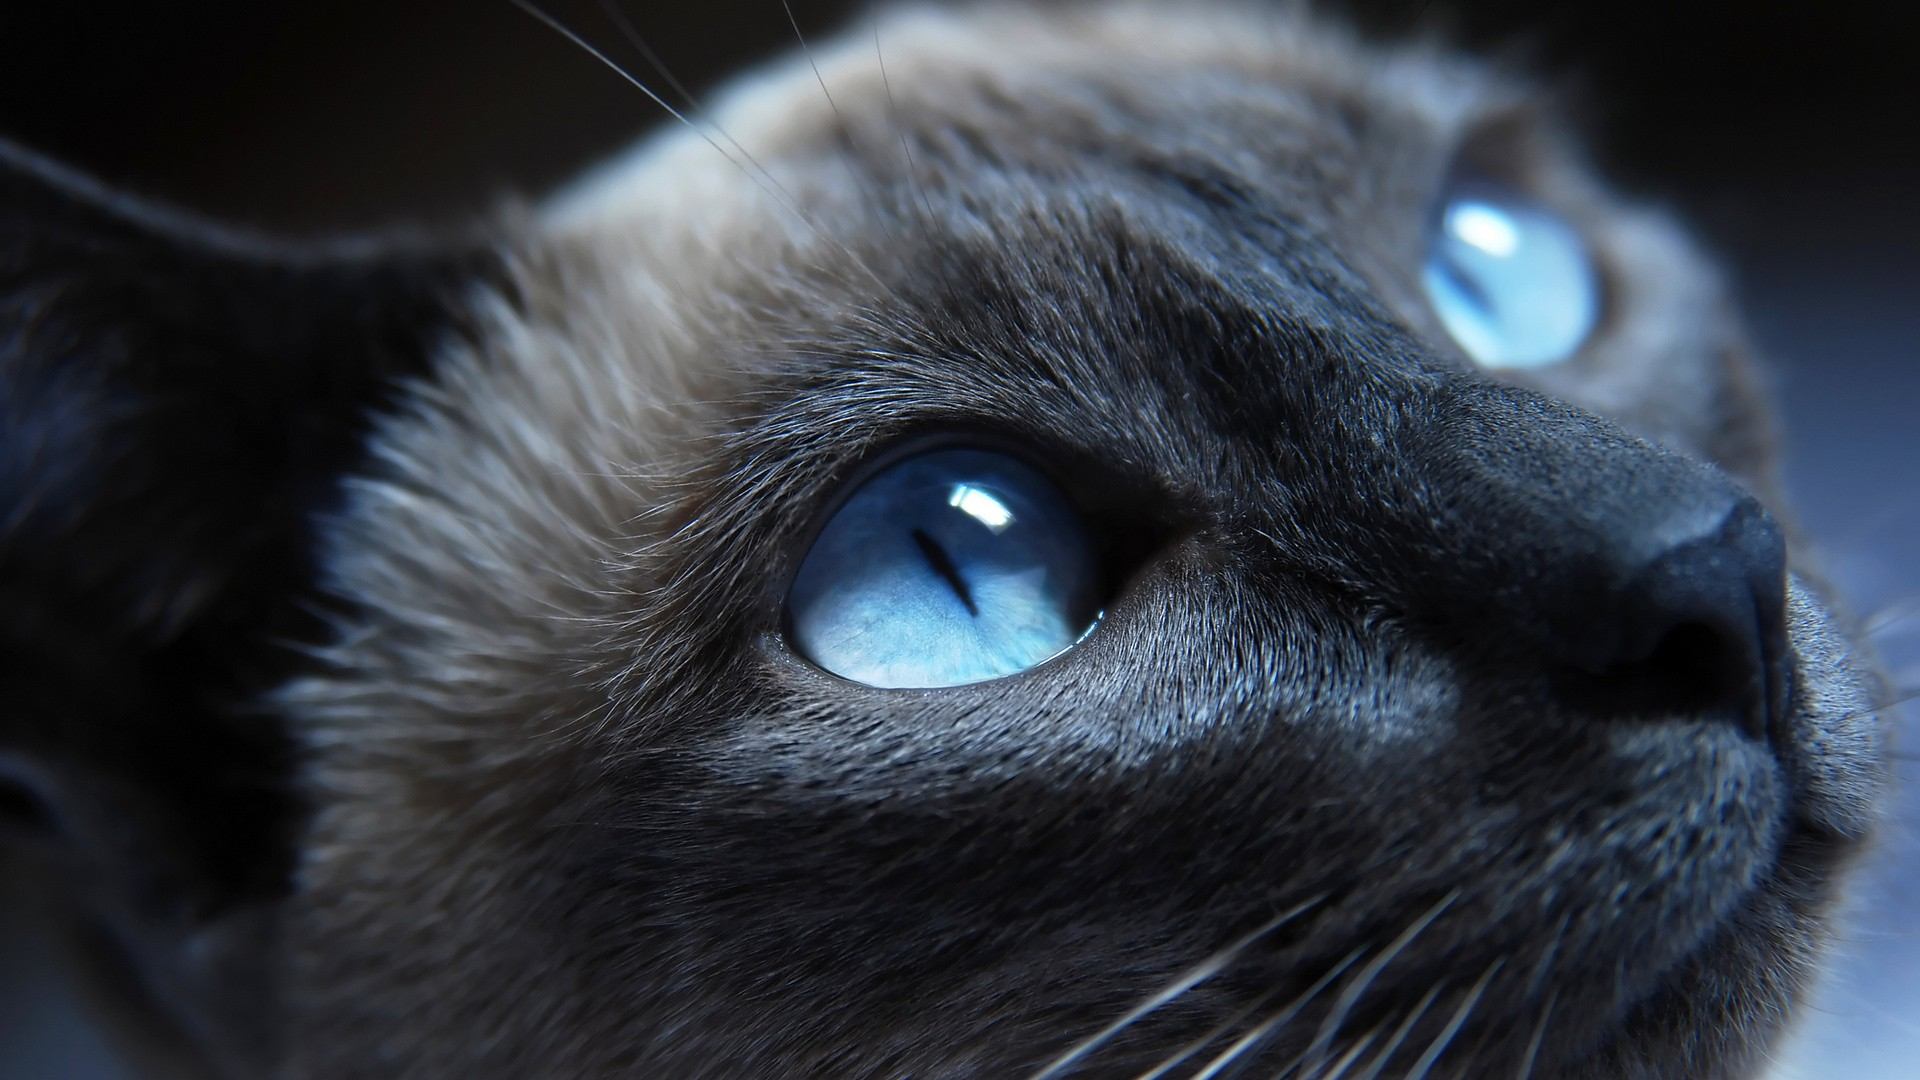 Fond Ecran Animal Gratuit Chat Yeux Bleu Regard Wallpaper Hd Cats Blue Eyes World Language Centre